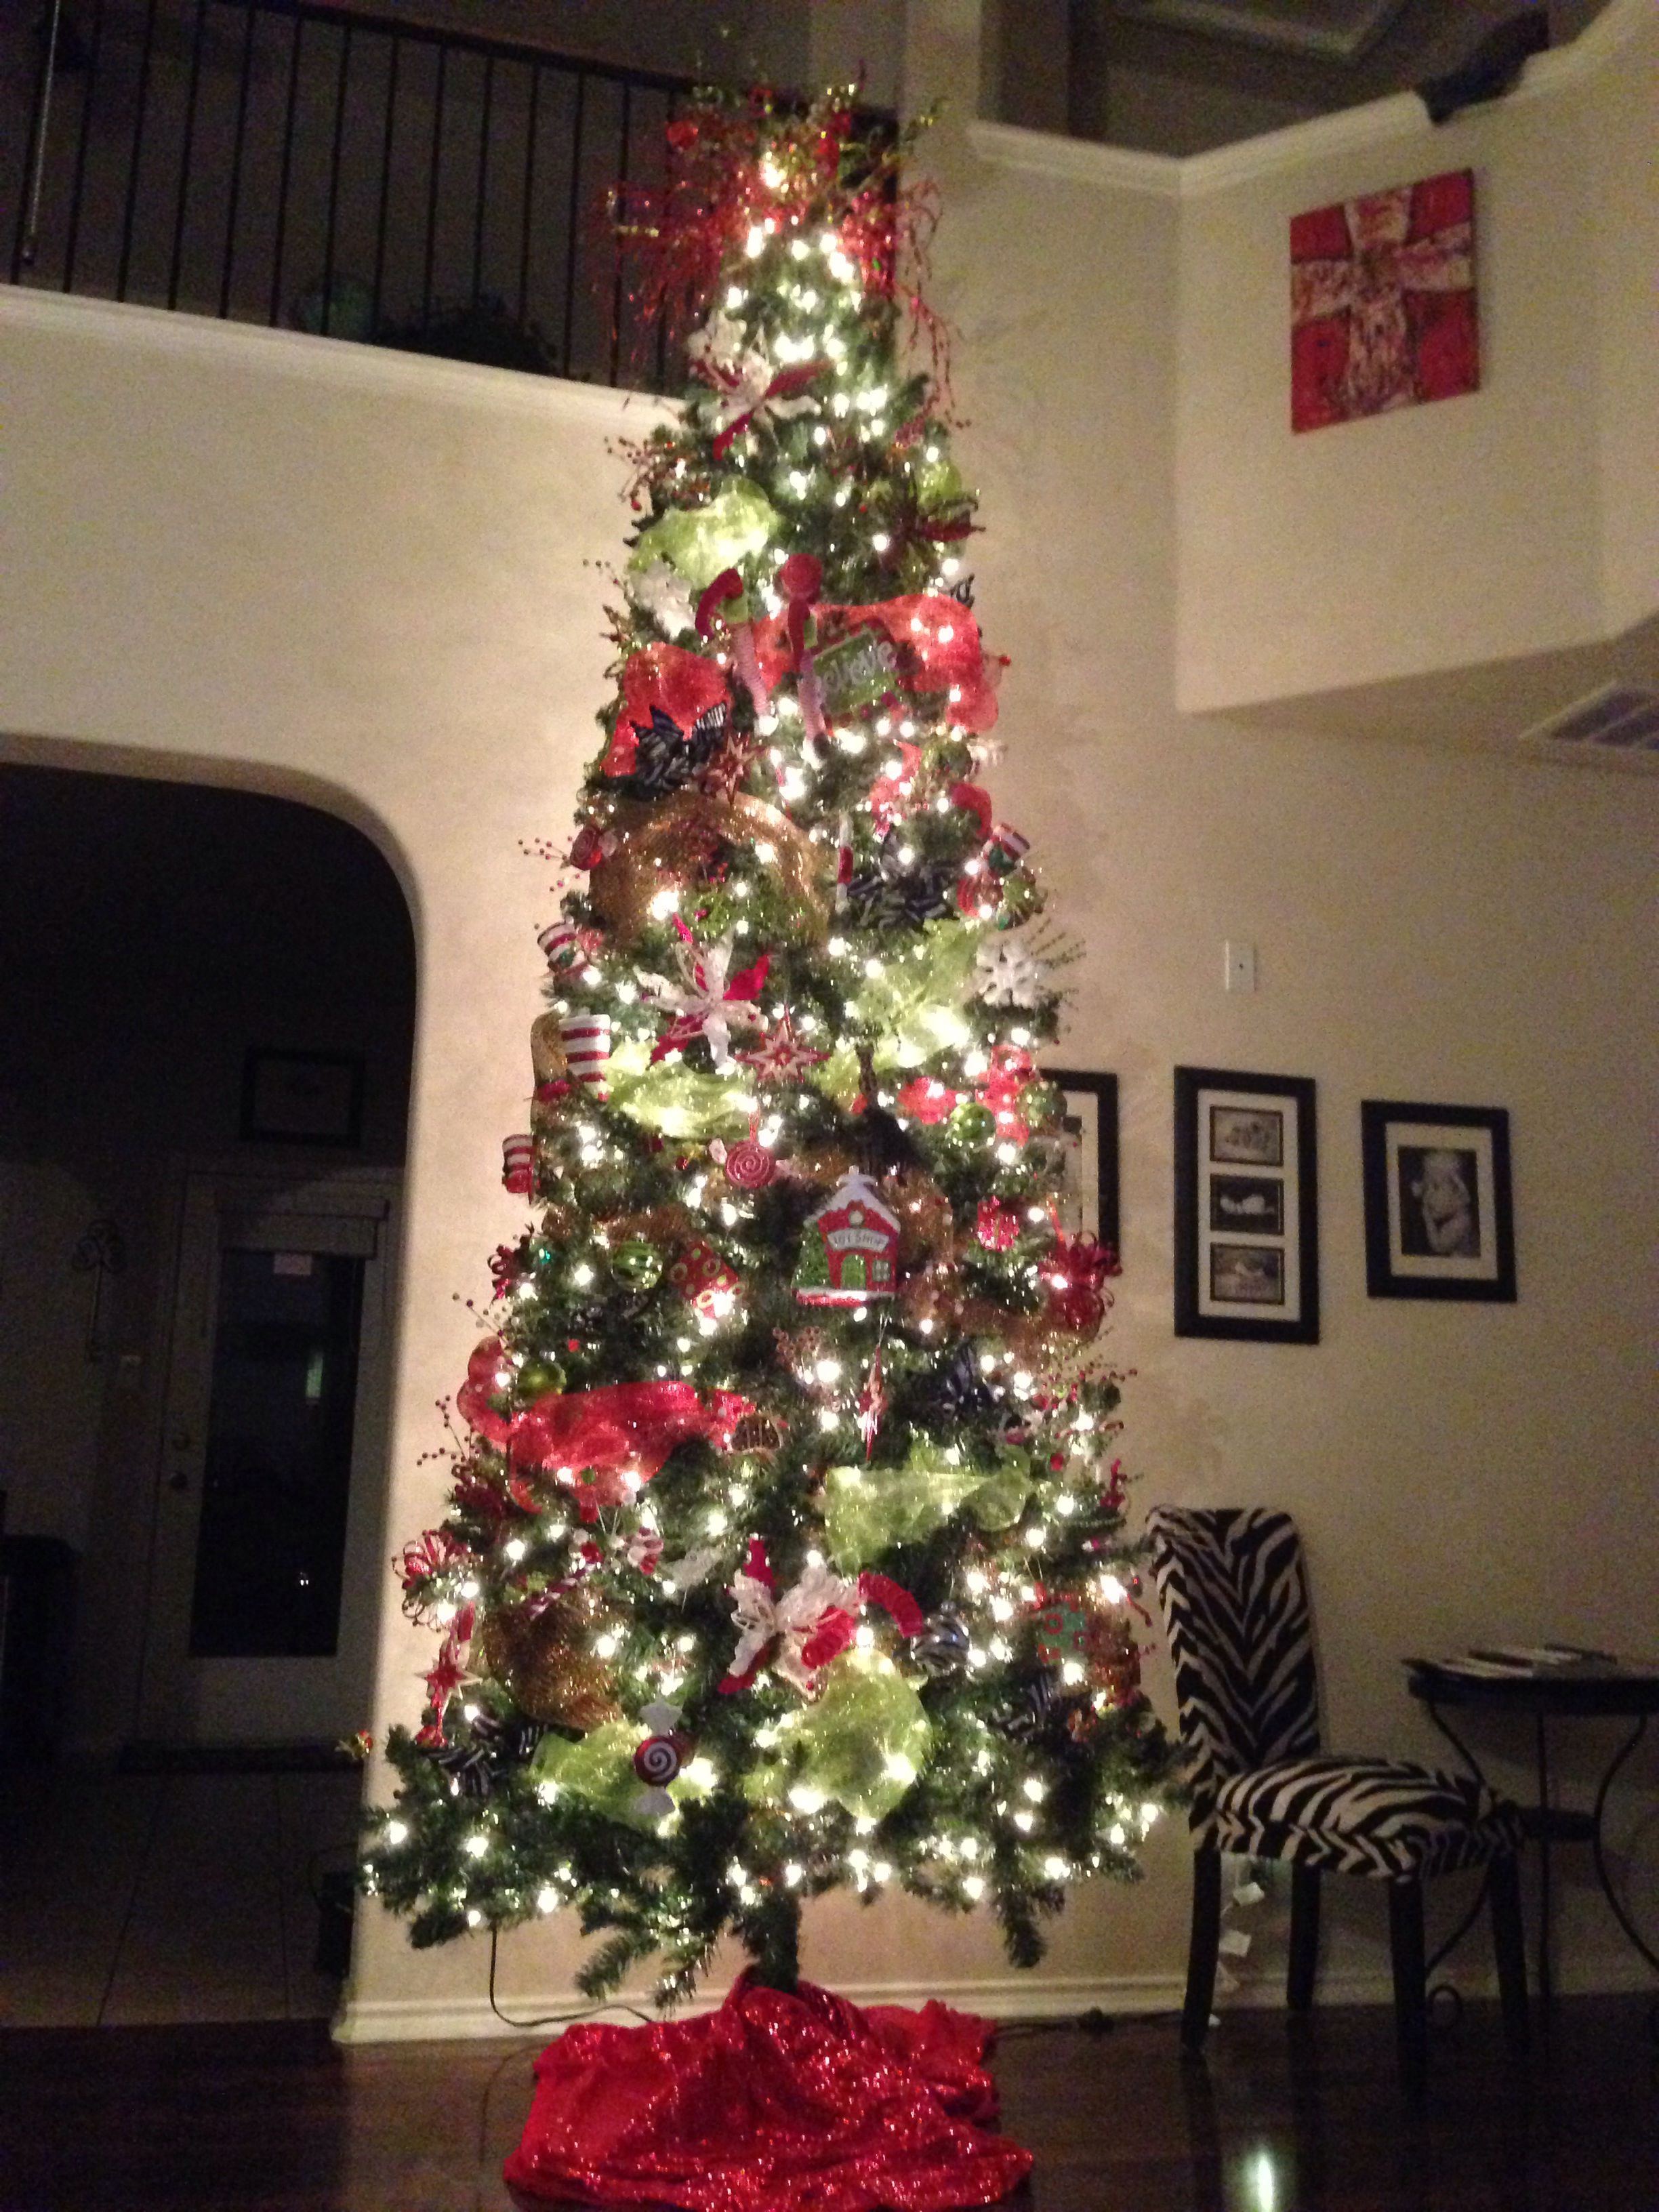 12 Ft Christmas Tree With Deco Mesh Go Big Or Go Home 12 Ft Christmas Tree Christmas Tree Holiday Decor